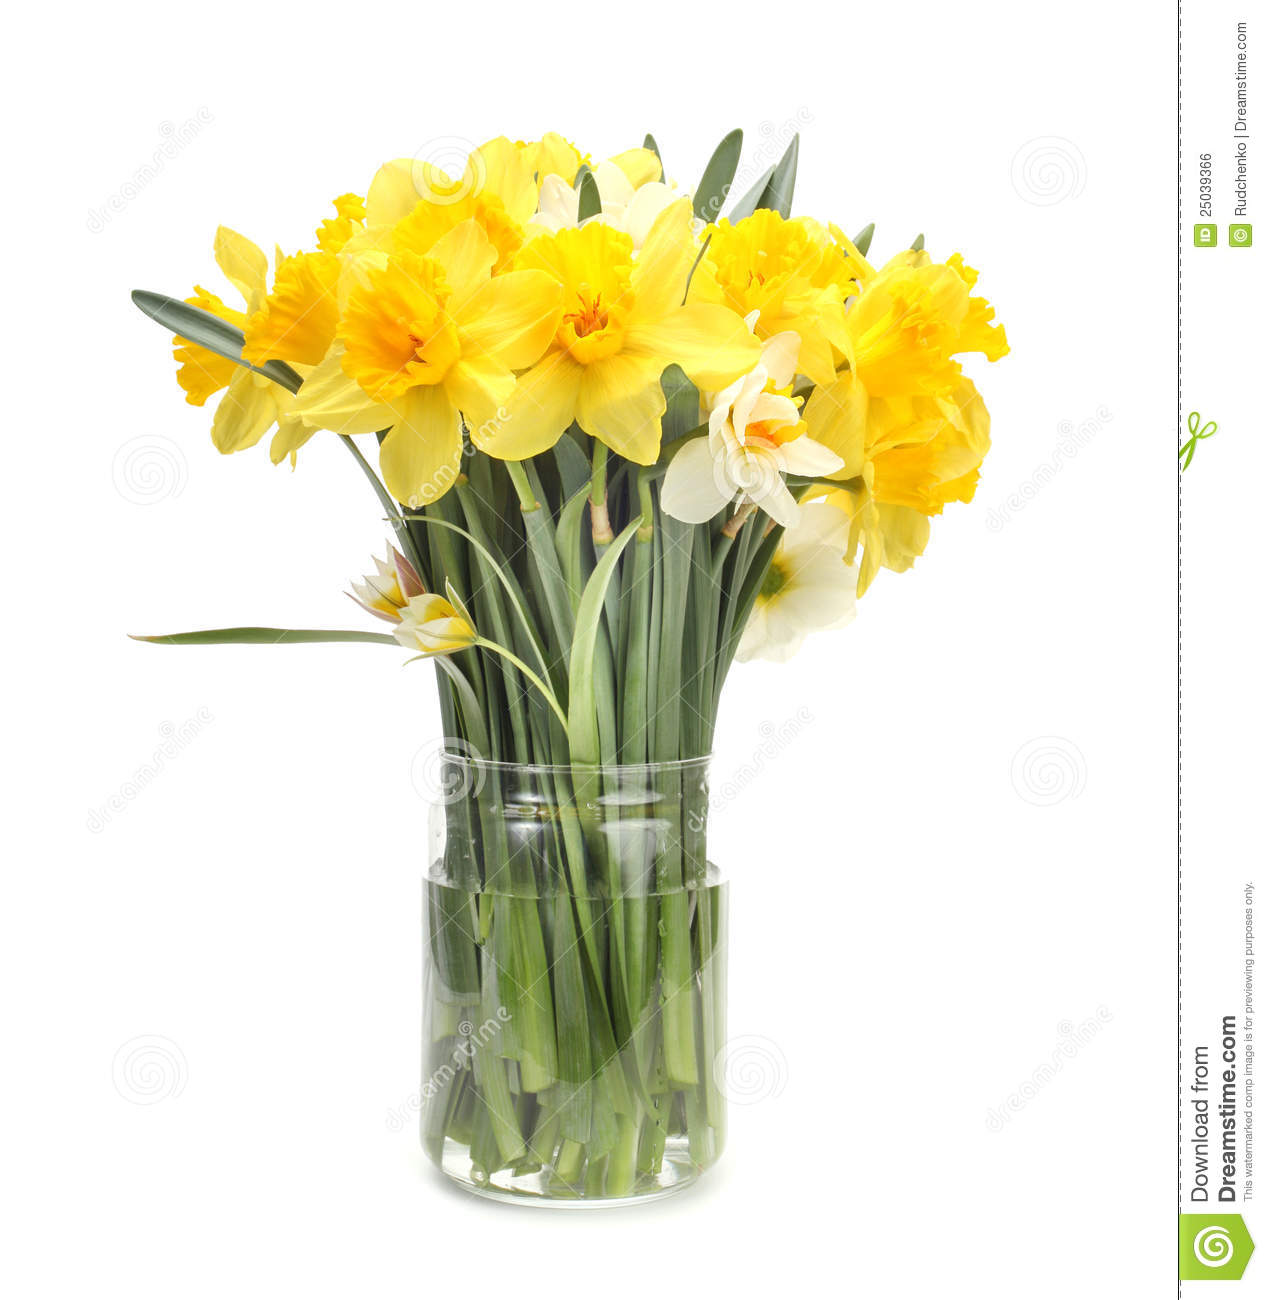 Narcissus Flower Bouquet Royalty Free Stock Image Image